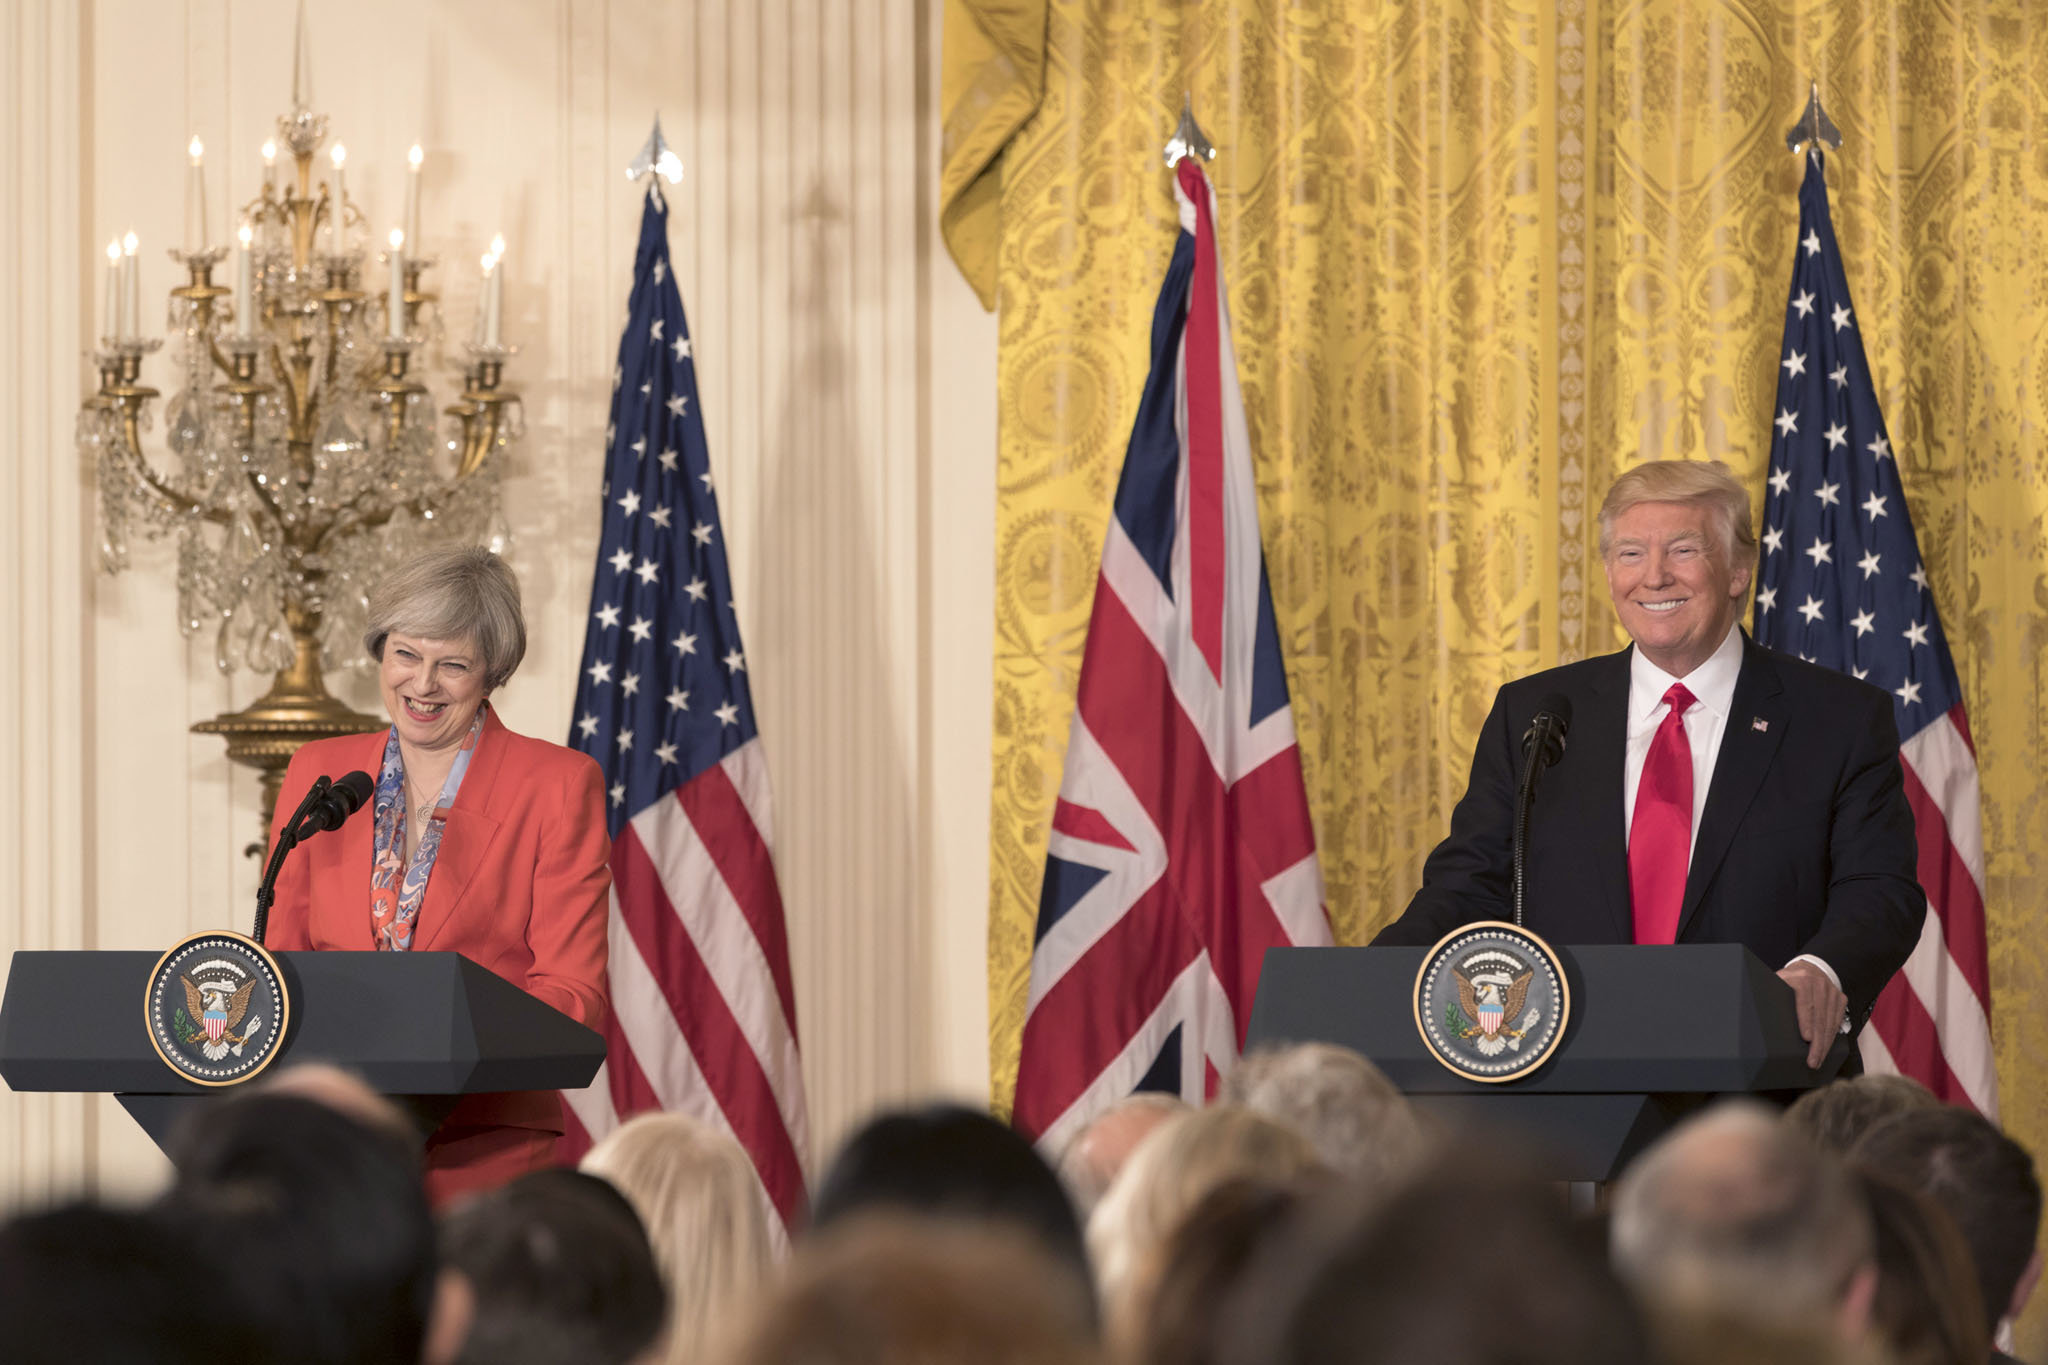 Brexit- could this threaten a UK-US trade deal? EMEA Brief 27 Nov